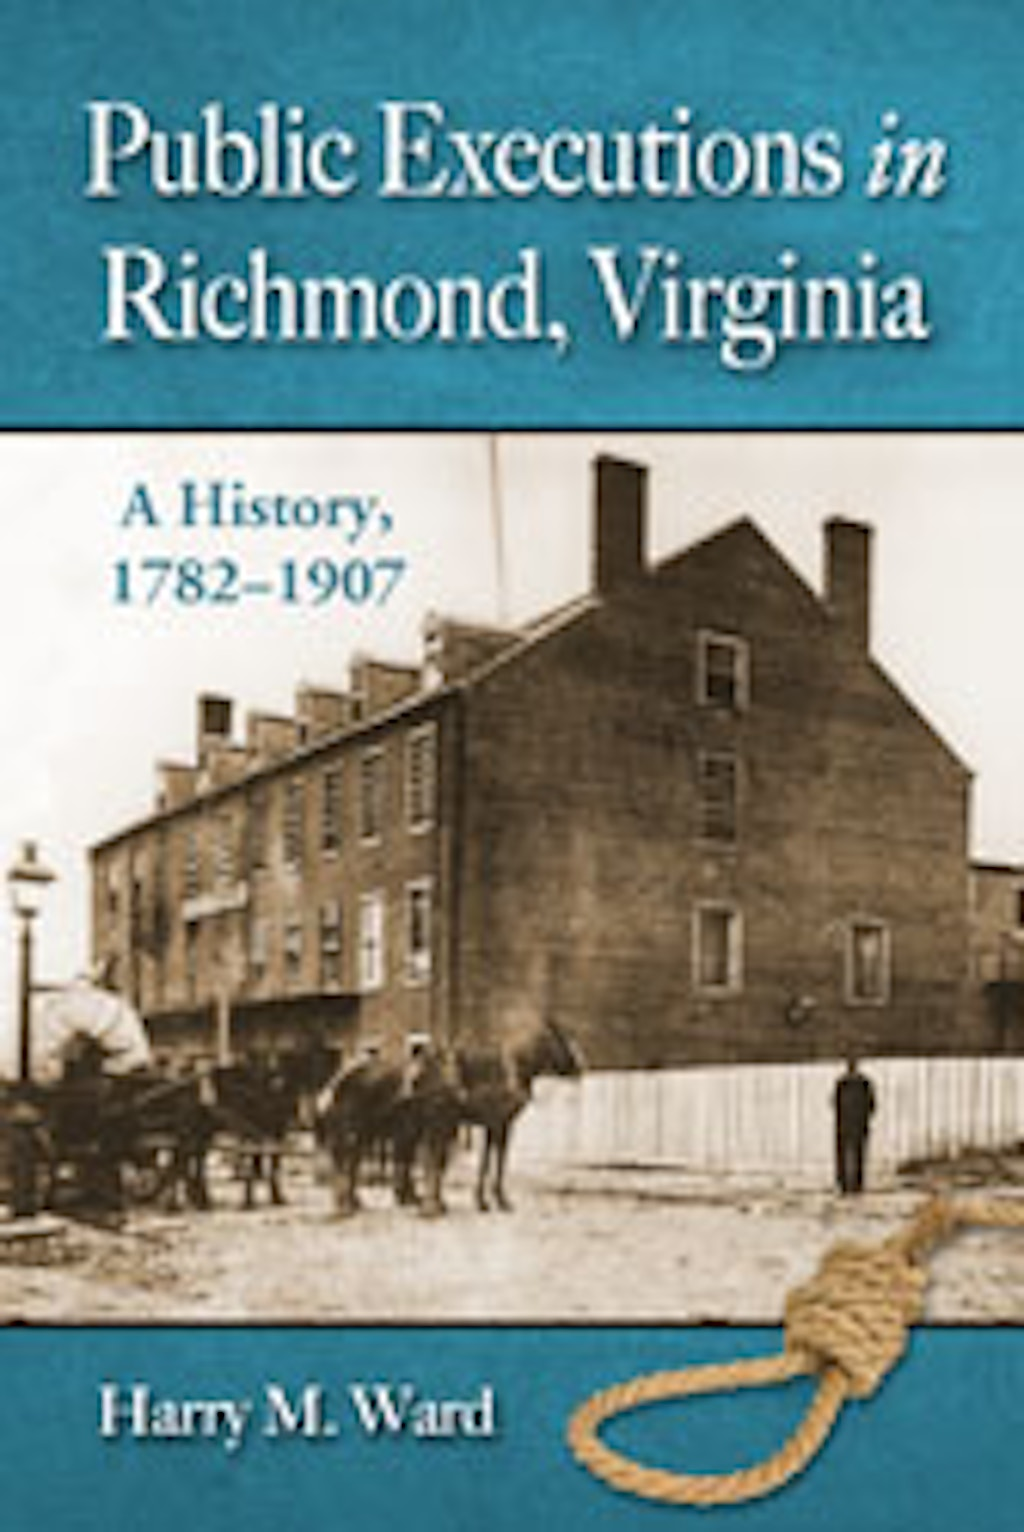 HISTORY: Public Executions in Virginia